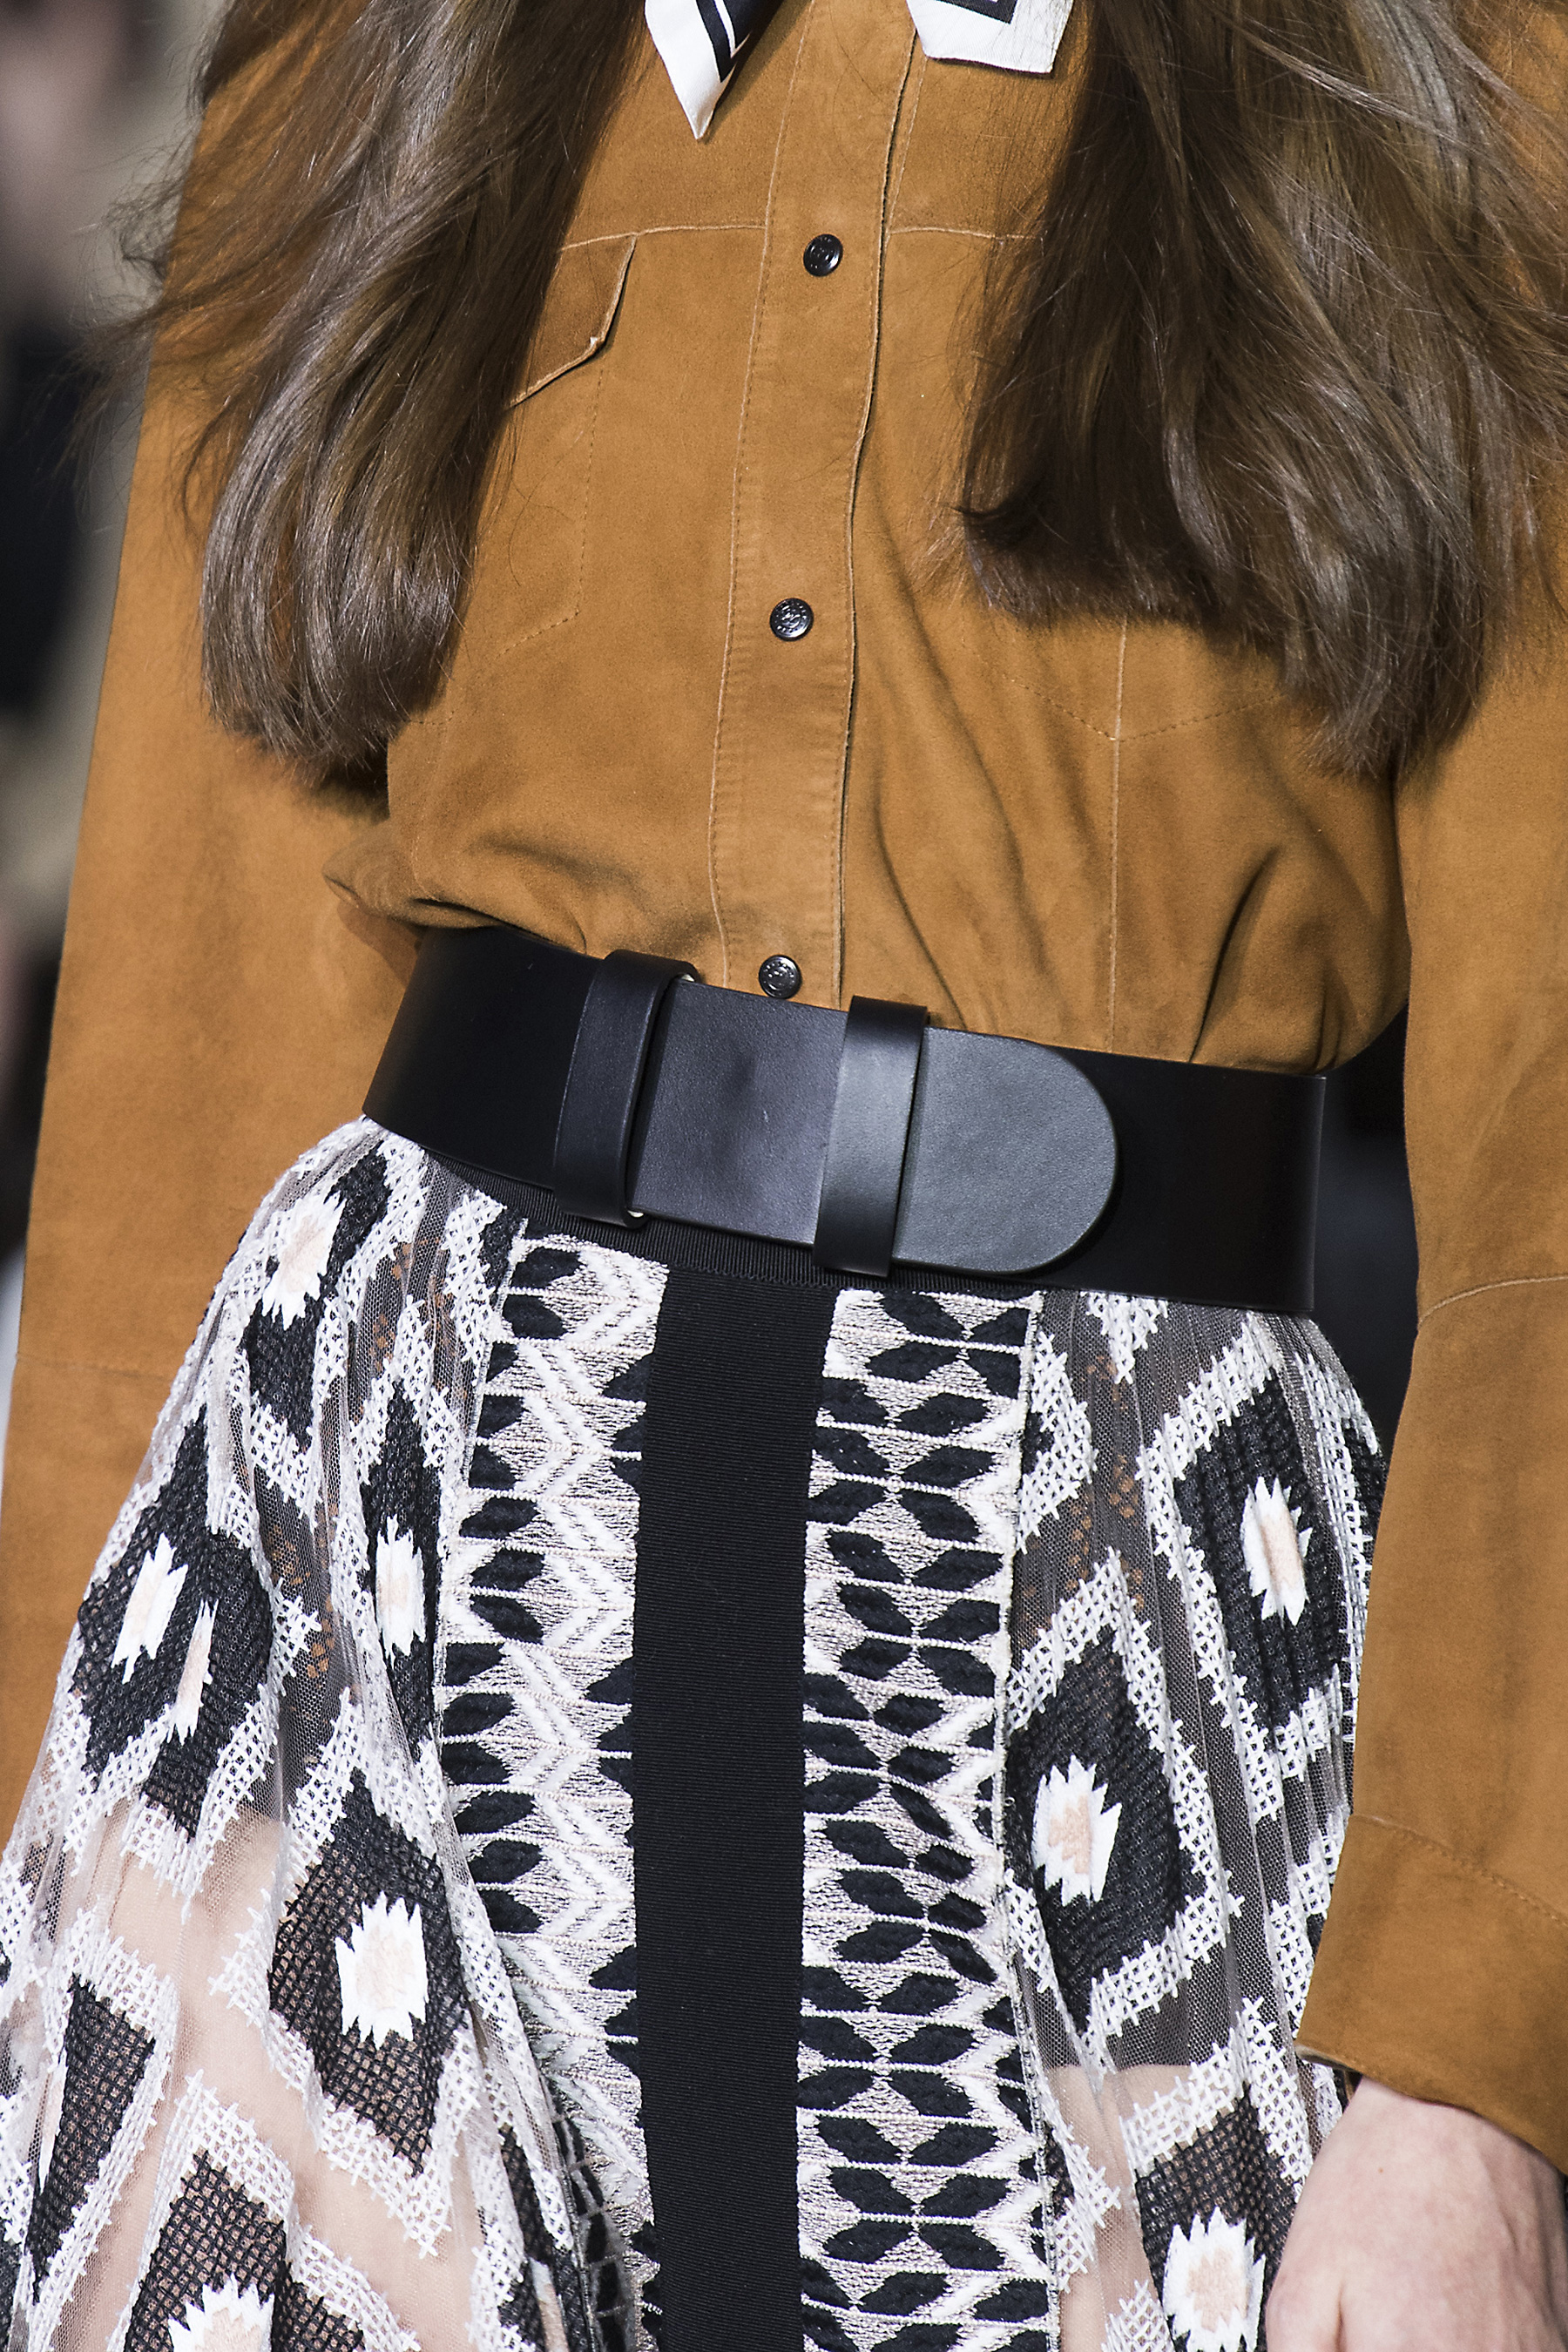 Longchamp Fall 2019 Fashion Show Details